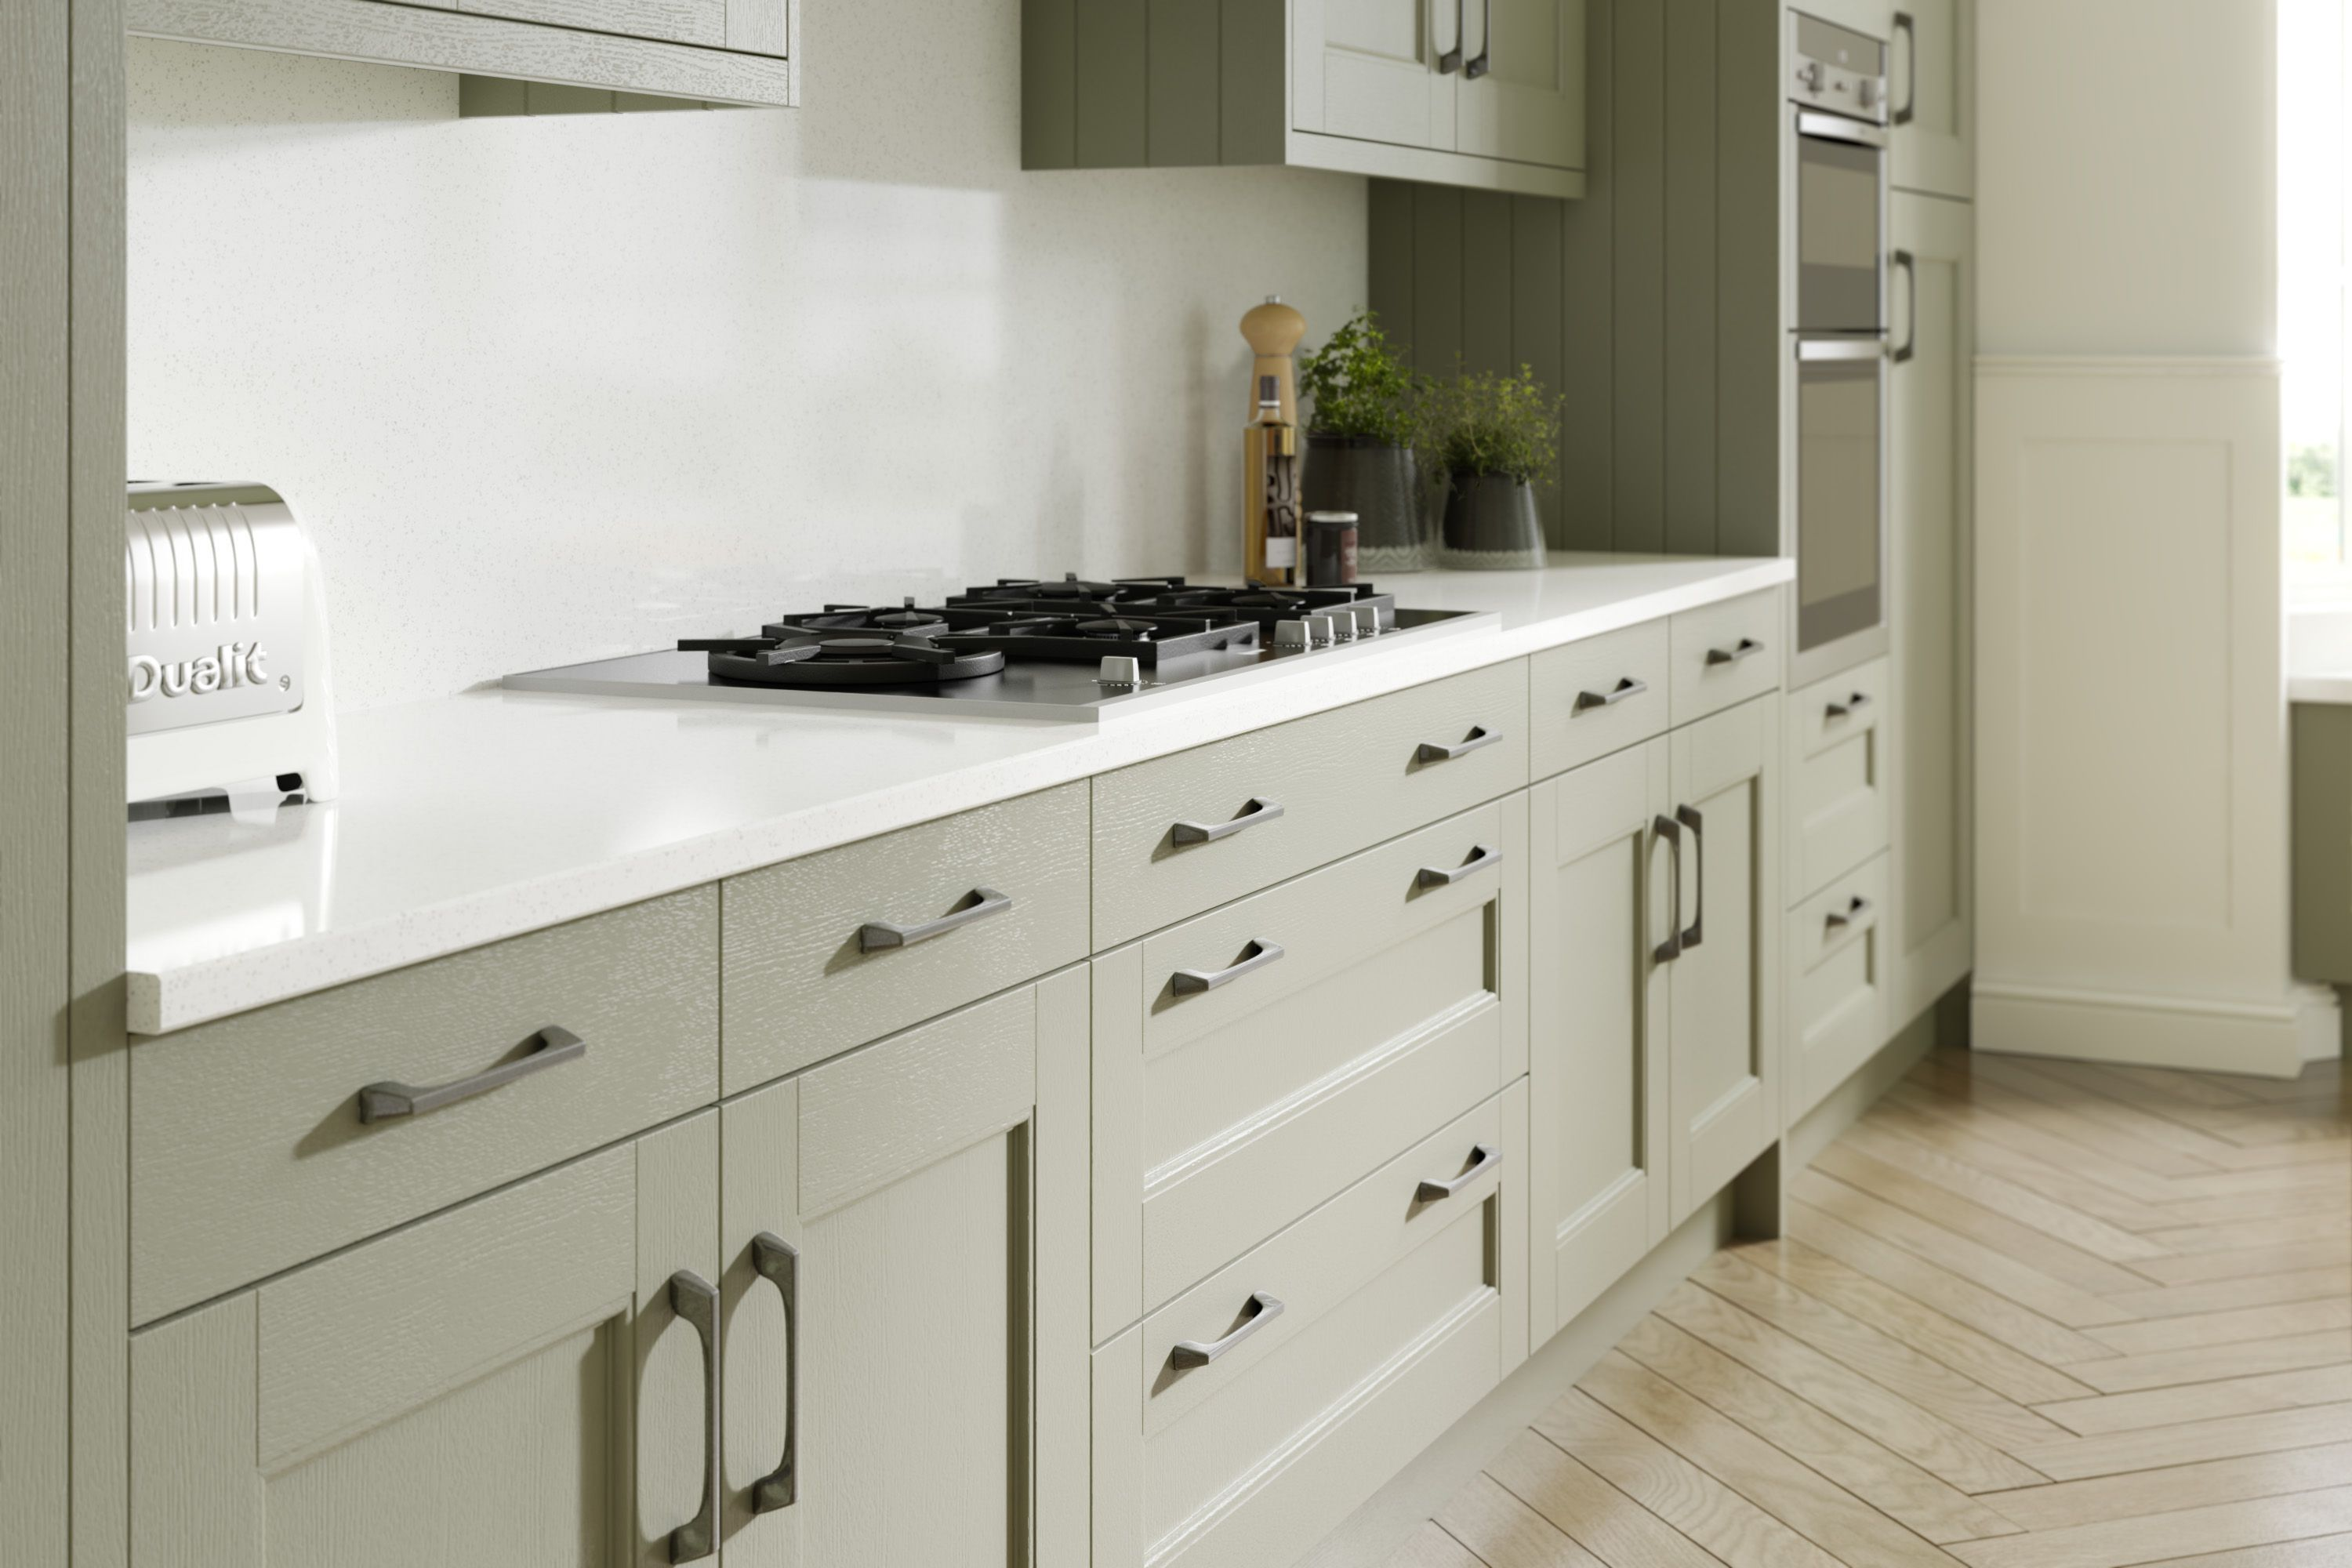 Painted Kitchens Kitchen Creations Leicesterkitchen Creations Leicester Bathroomdesignleicester Green Kitchen Cabinets Shaker Kitchen Shaker Kitchen Cabinets